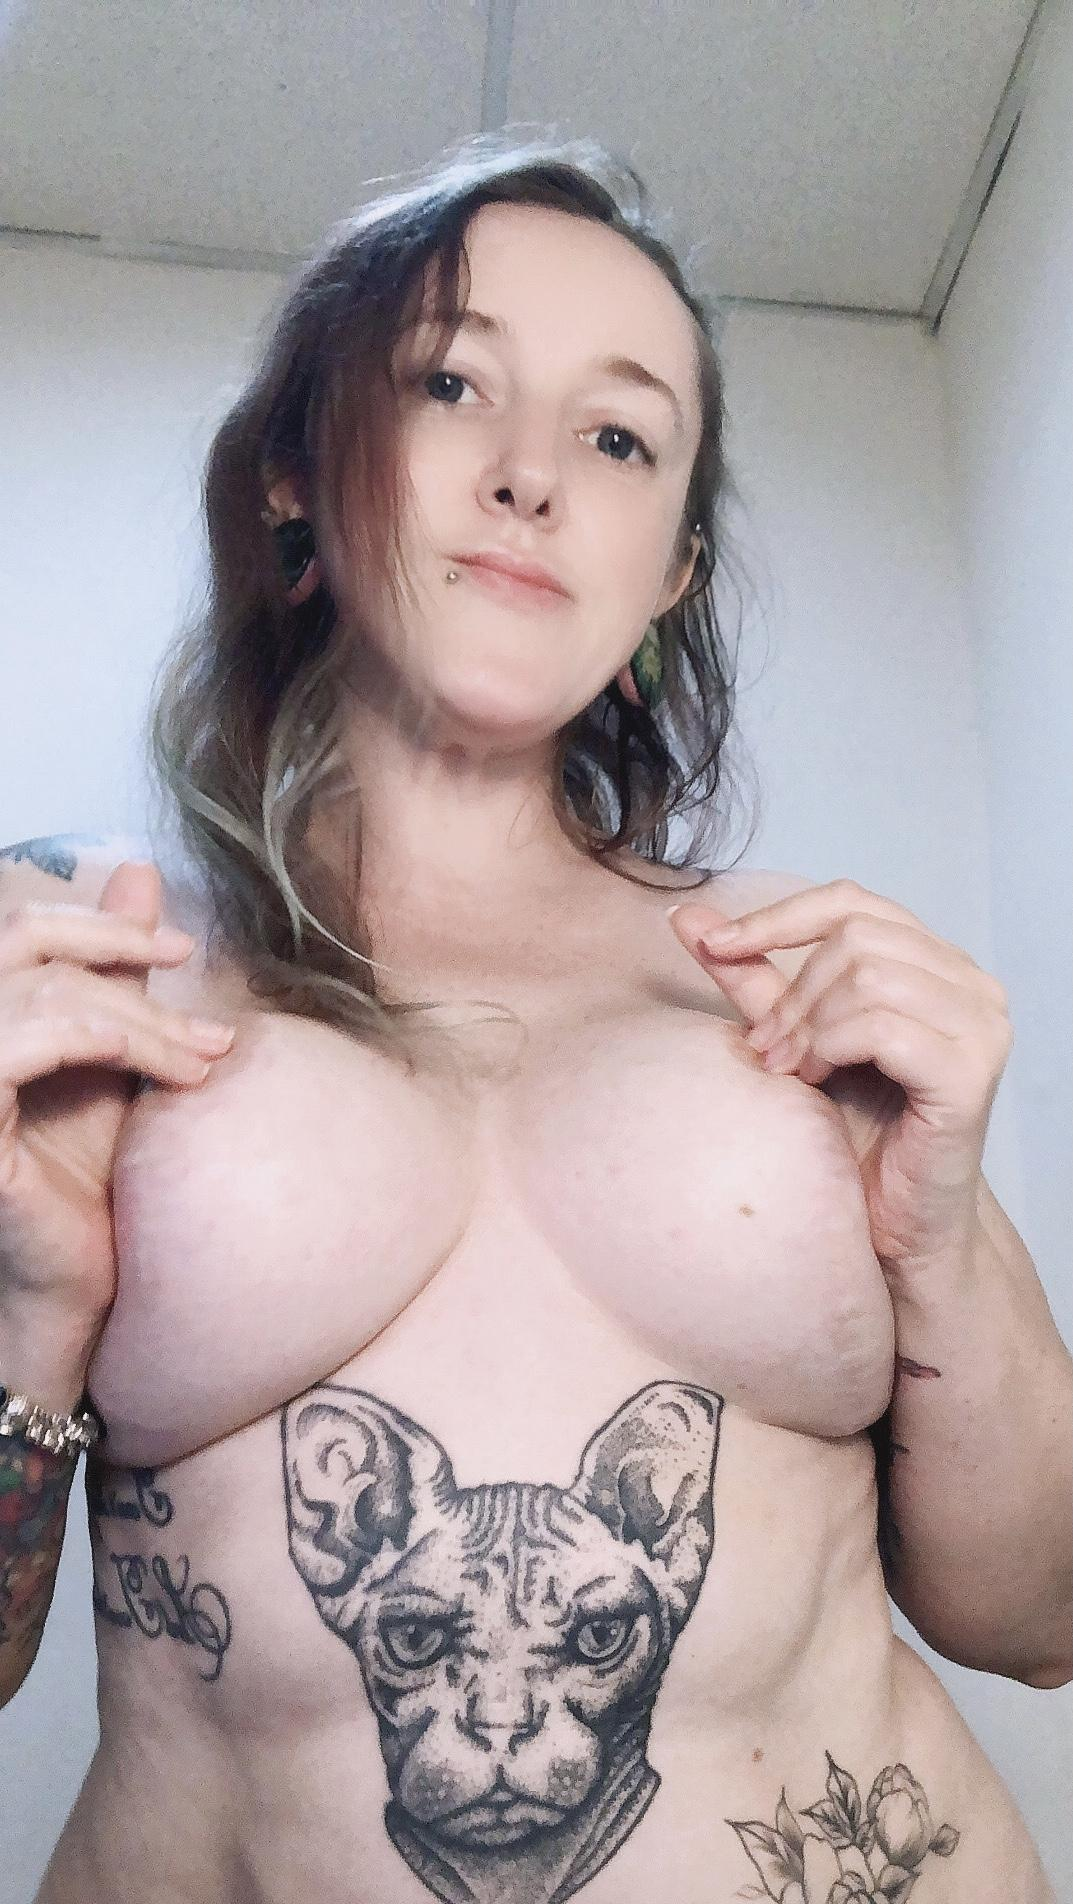 Picture with tags: Tattoo, HD, Topless, Real, Interesting, Girl